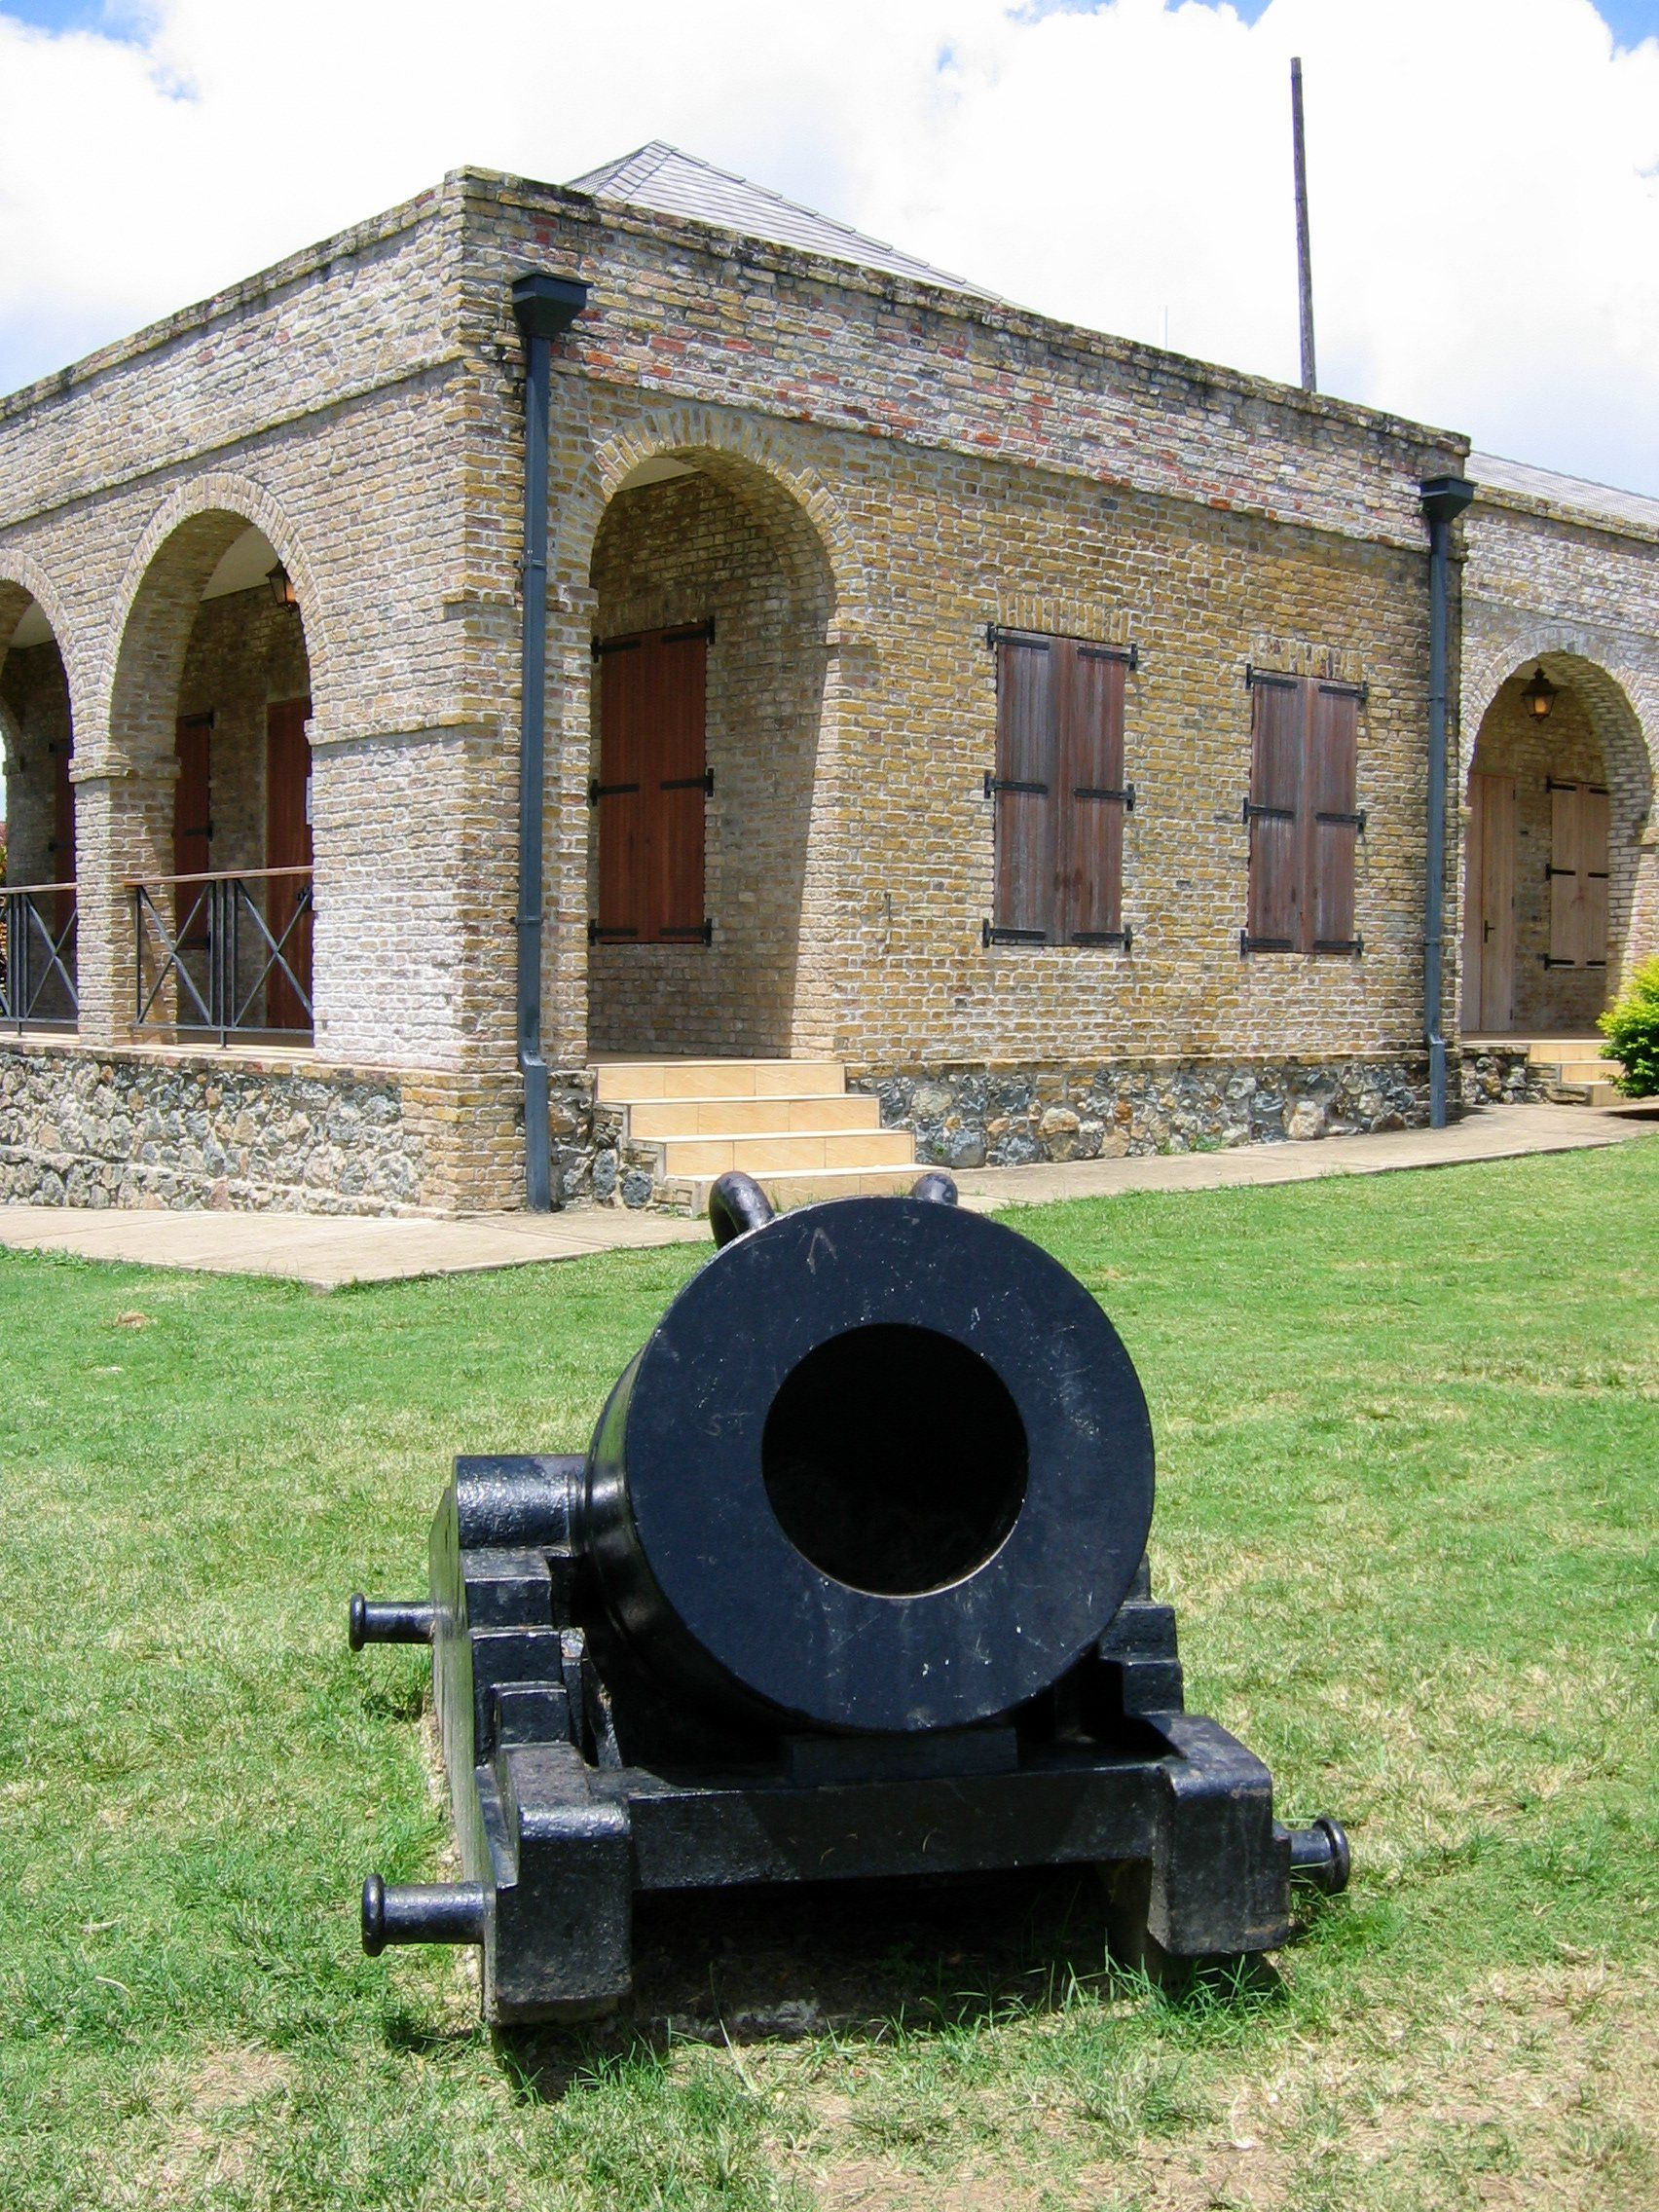 Check out some history. Fort King Scarborough